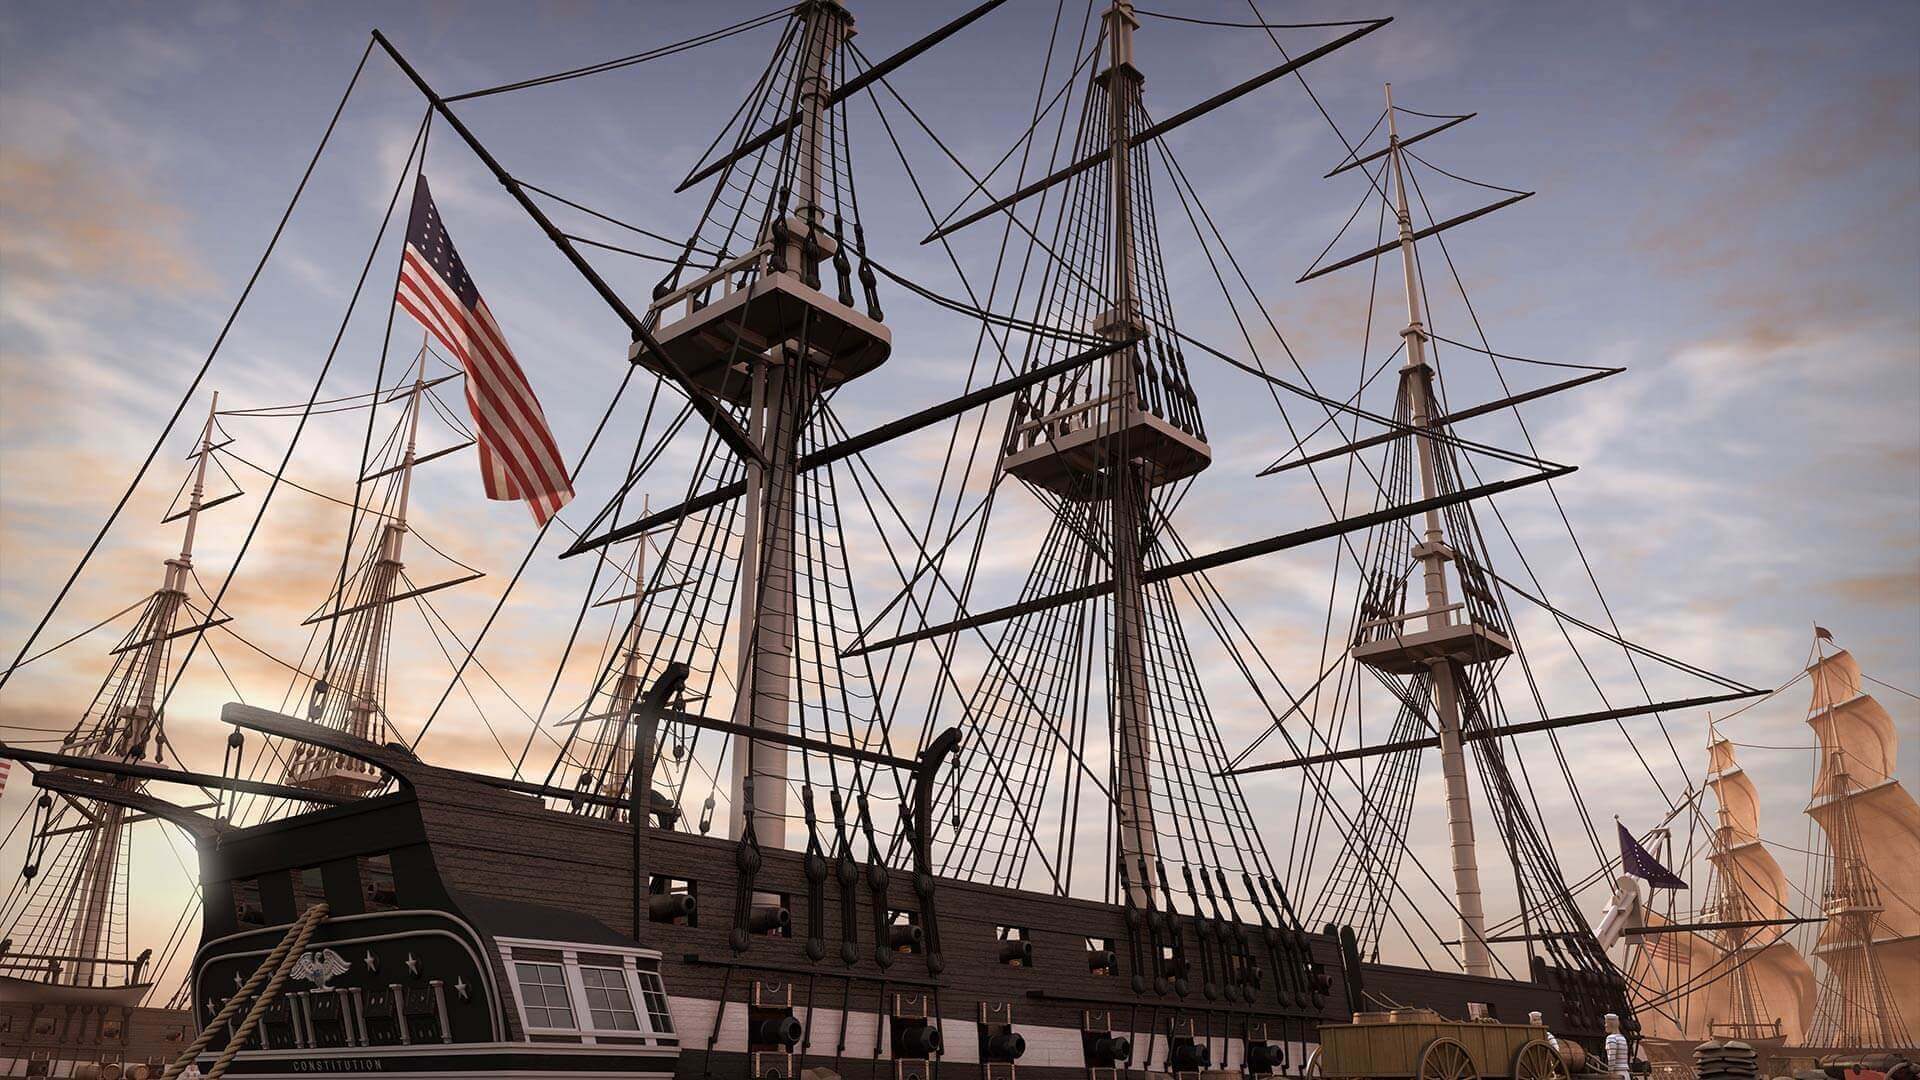 The USS Constitution in Boston